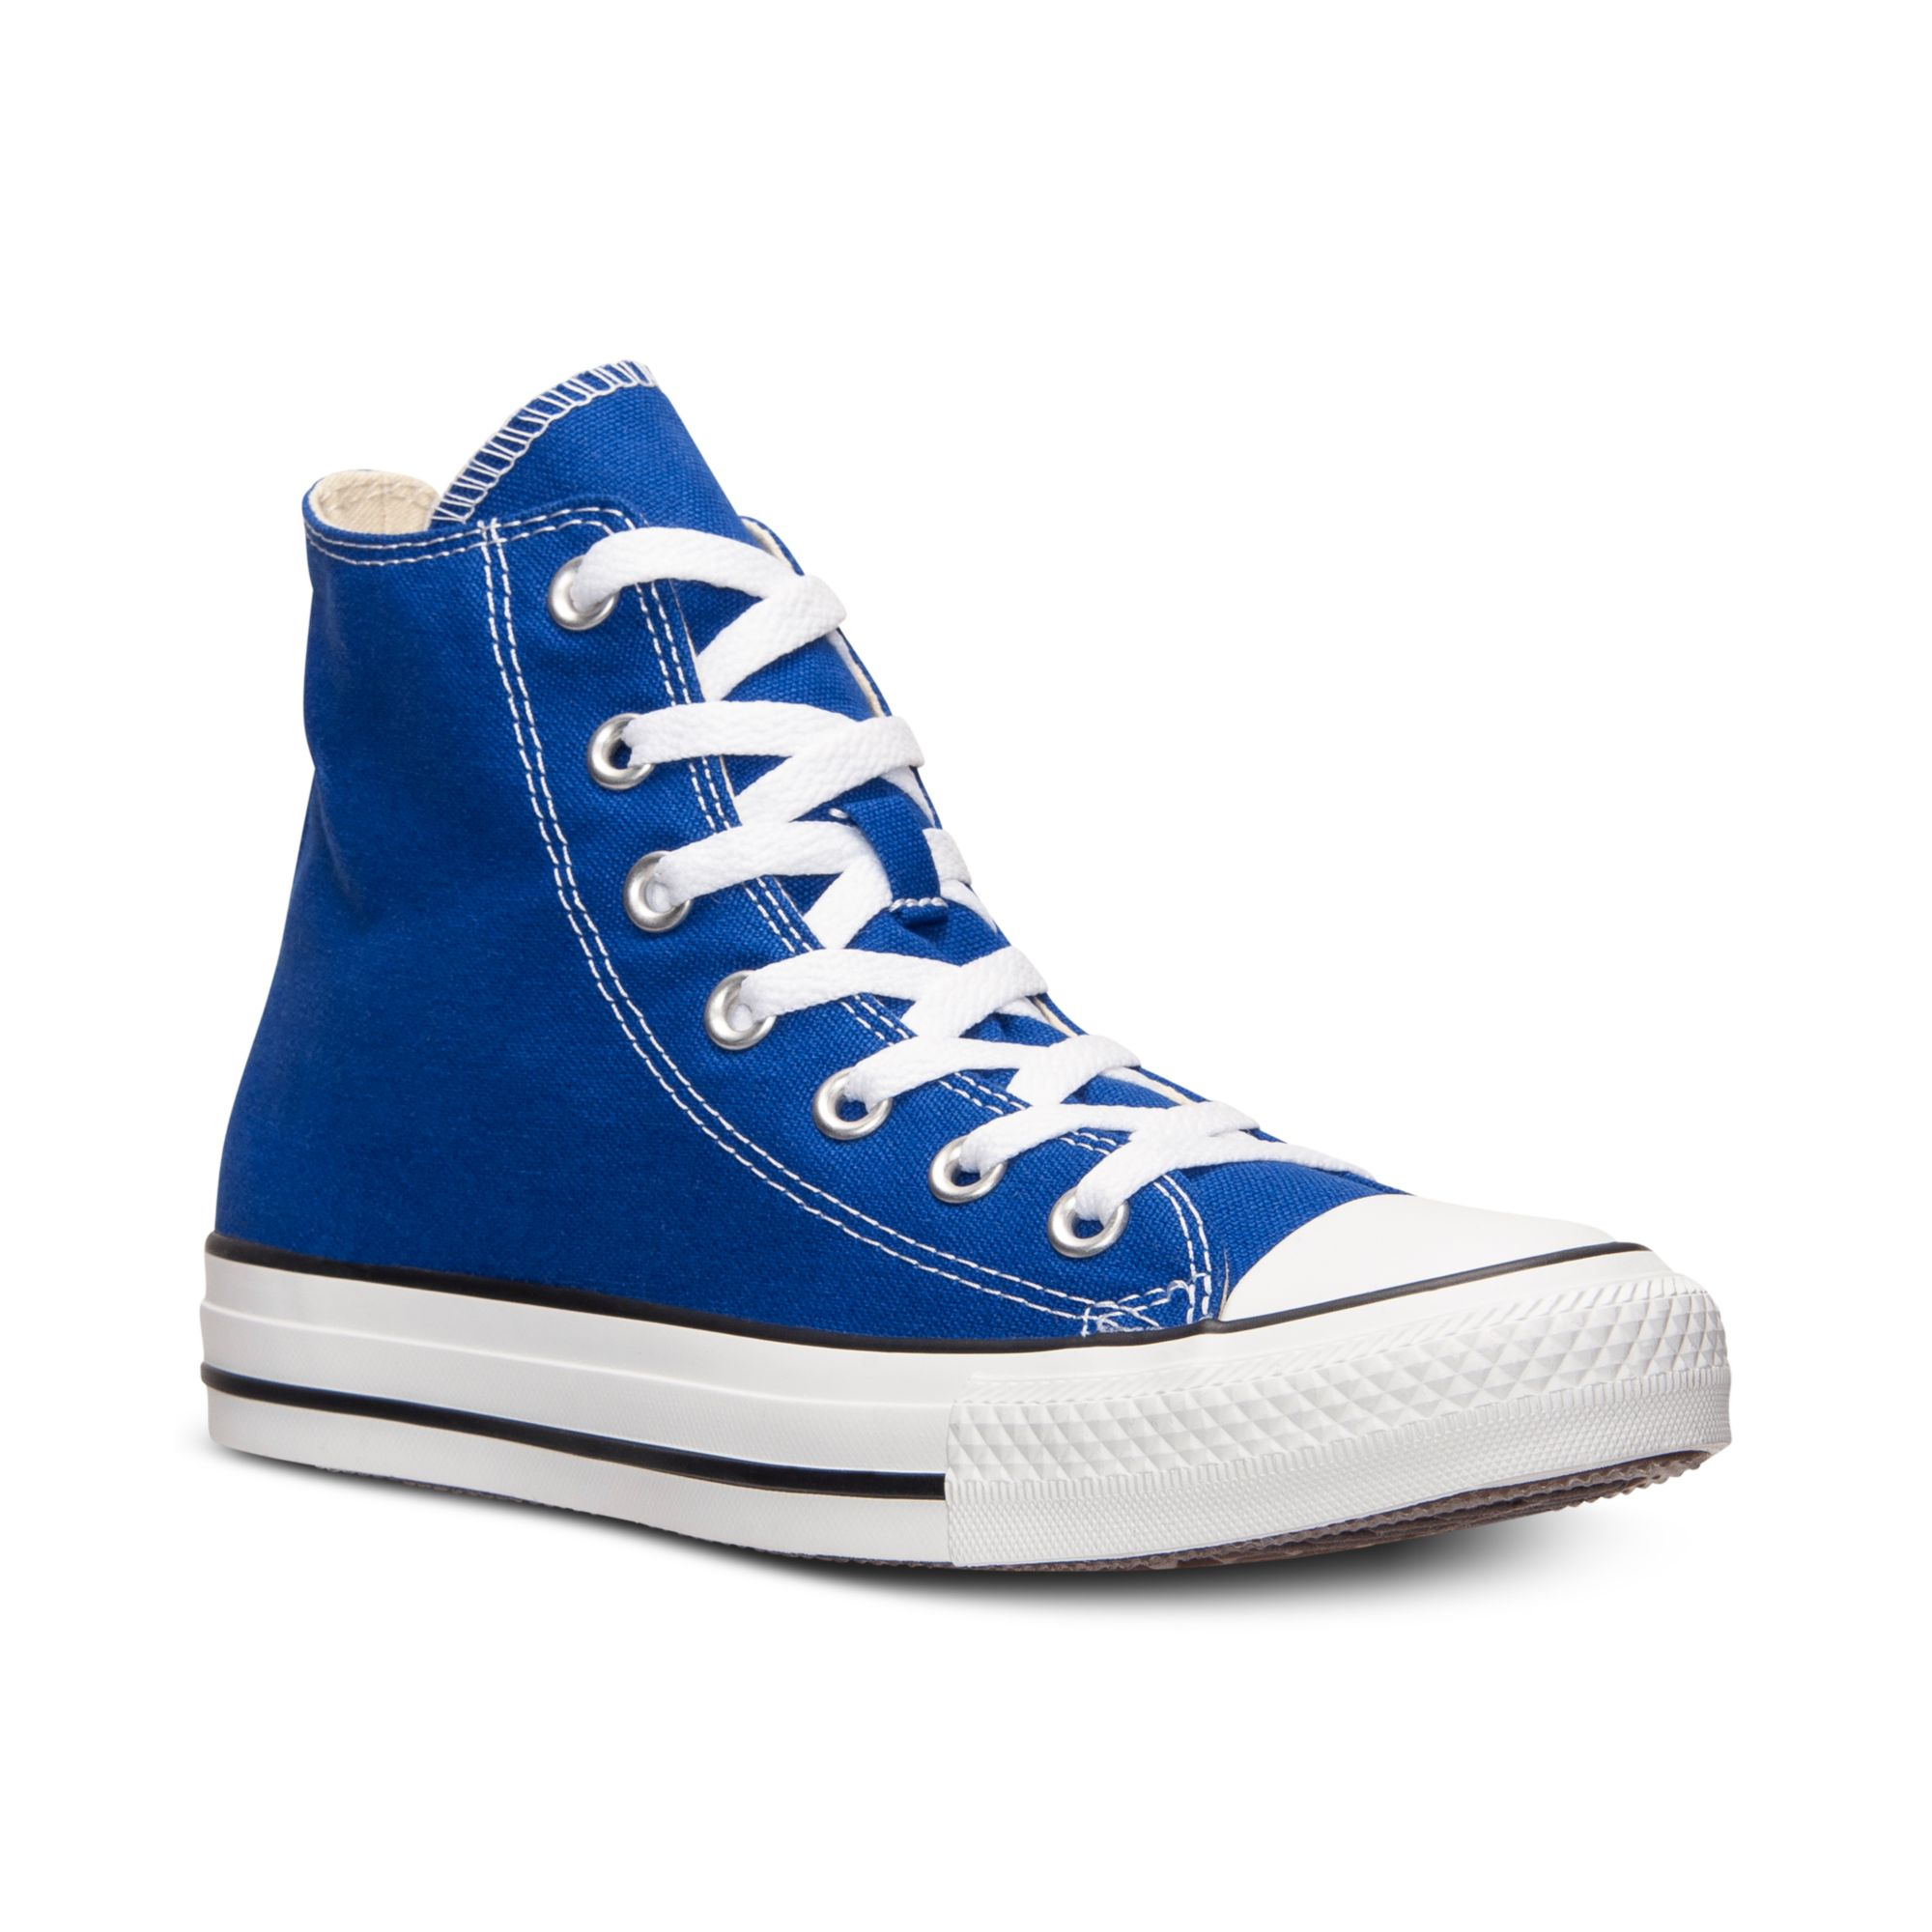 Lyst - Converse Mens Chuck Taylor High Top Casual Sneakers From ... 0a44446b7